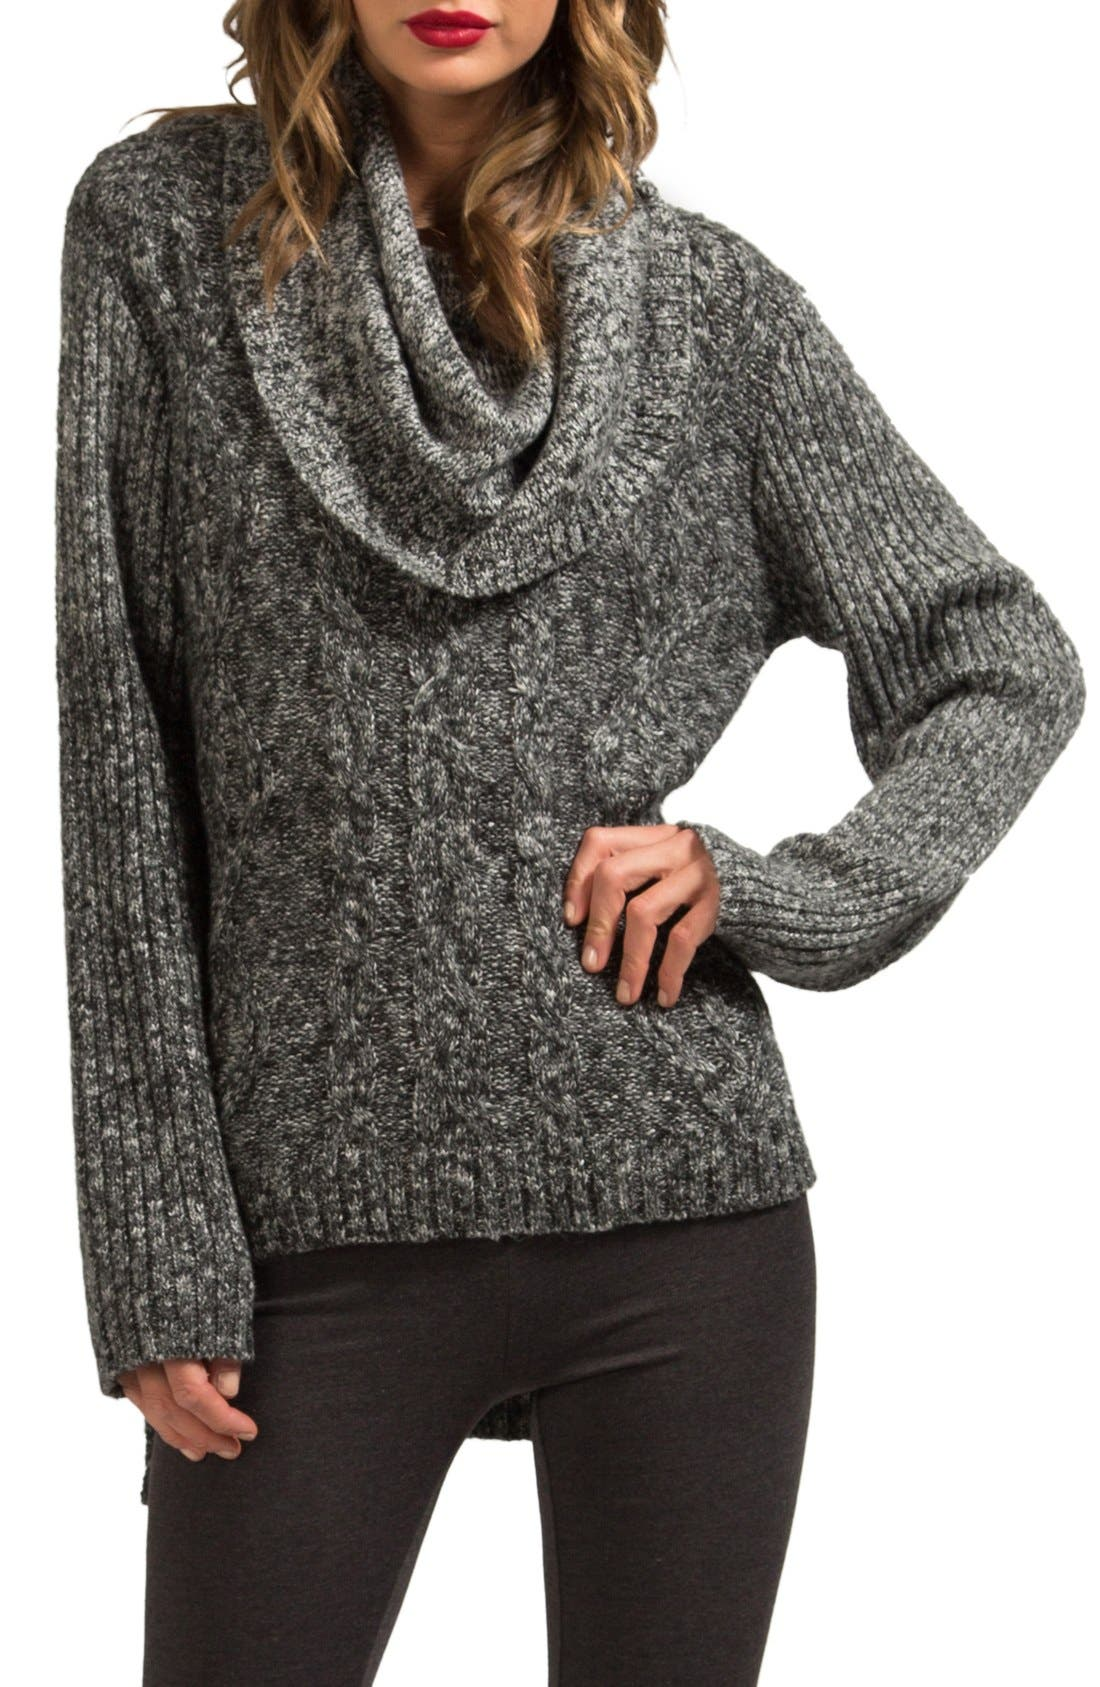 Alternate Image 1 Selected - LAmade Oversize Cowl Neck High/Low Sweater